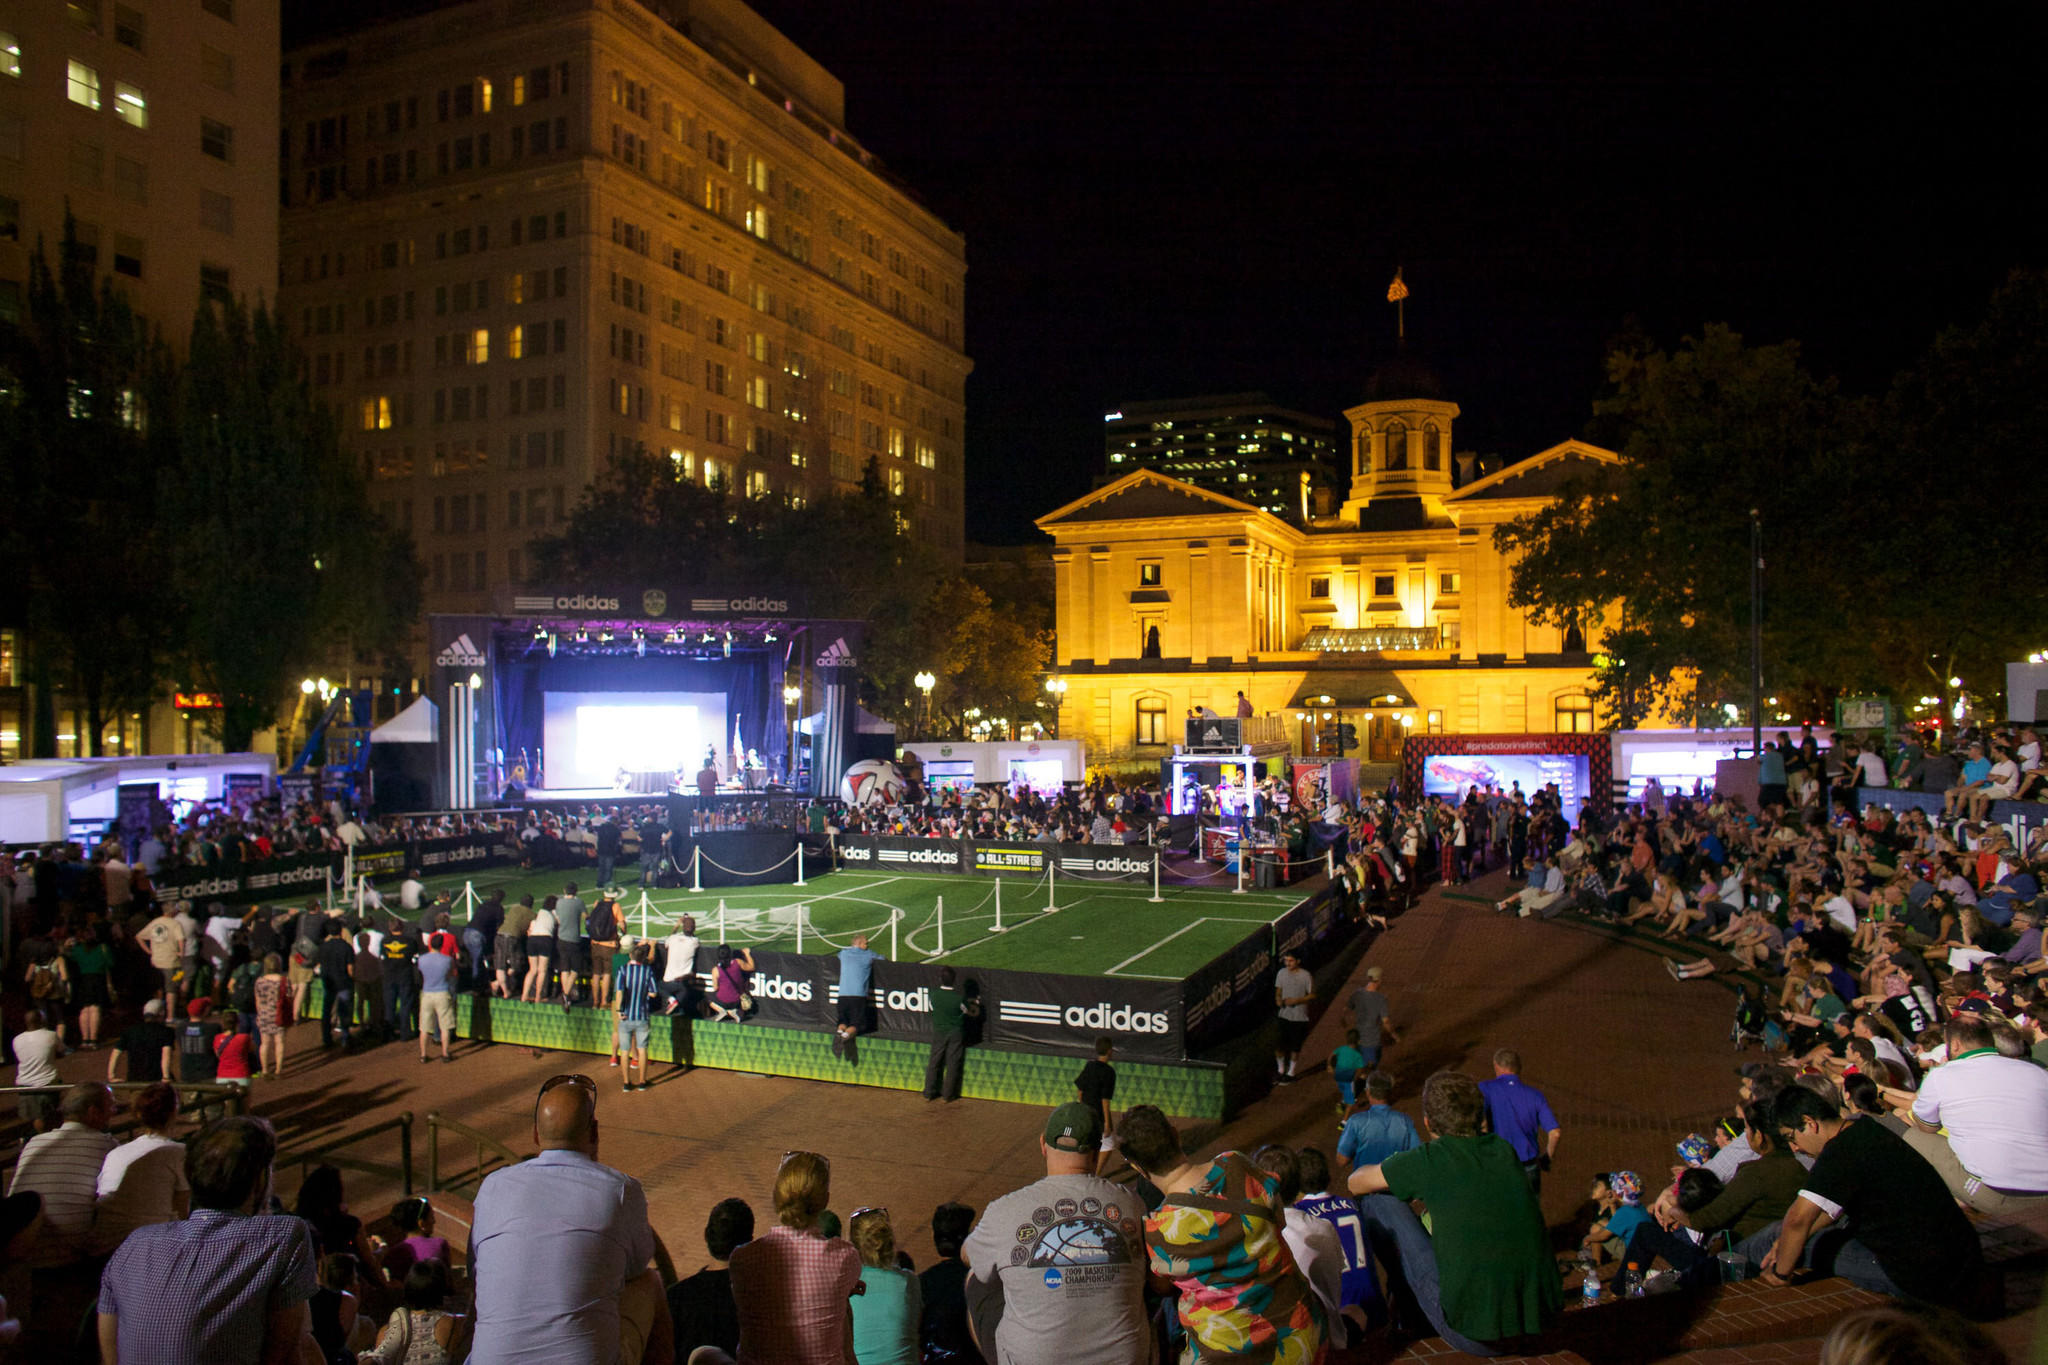 Aug 4, 2014; Portland, OR, USA; A crowd gathers during a broadcast in advance of the 2014 MLS All Star Game at Pioneer Courthouse Square. Mandatory Credit: Meg Williams-USA TODAY Sports